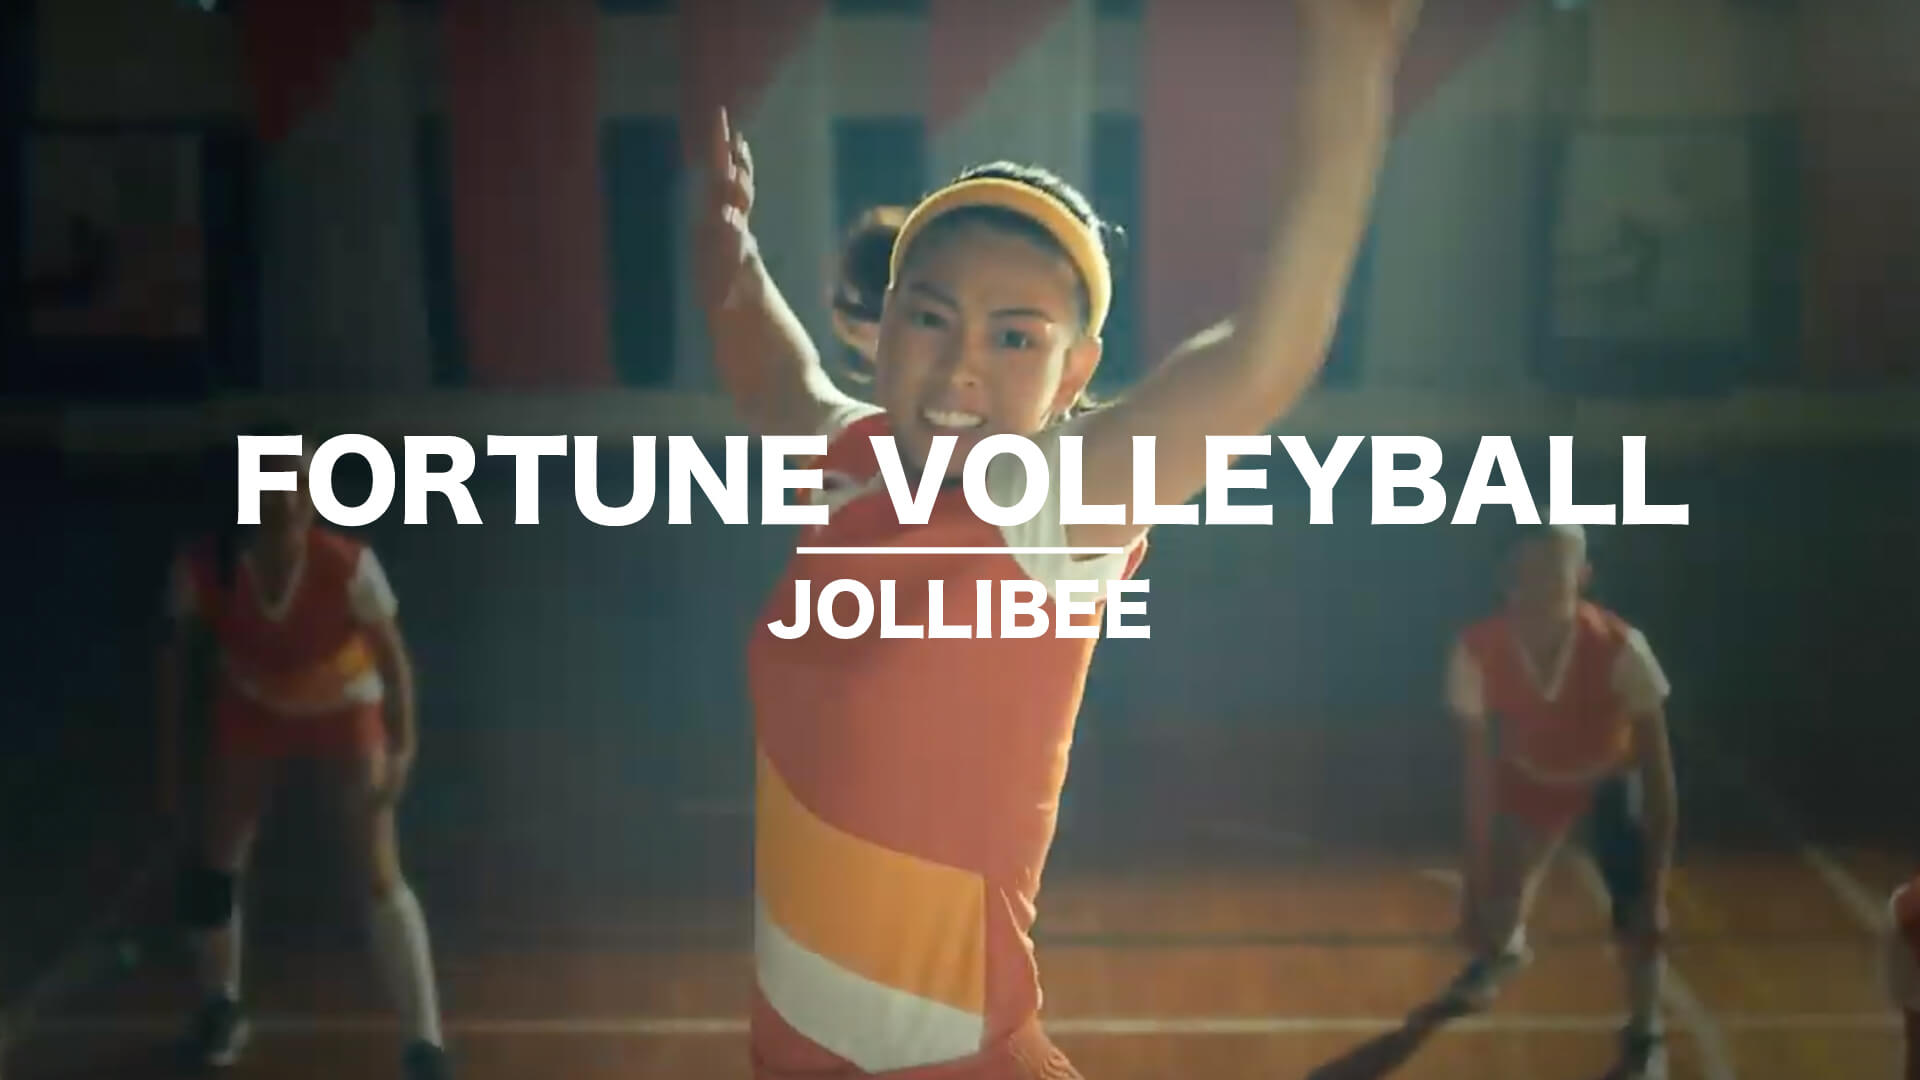 Project Fortune Volleyball Jollibee Digital